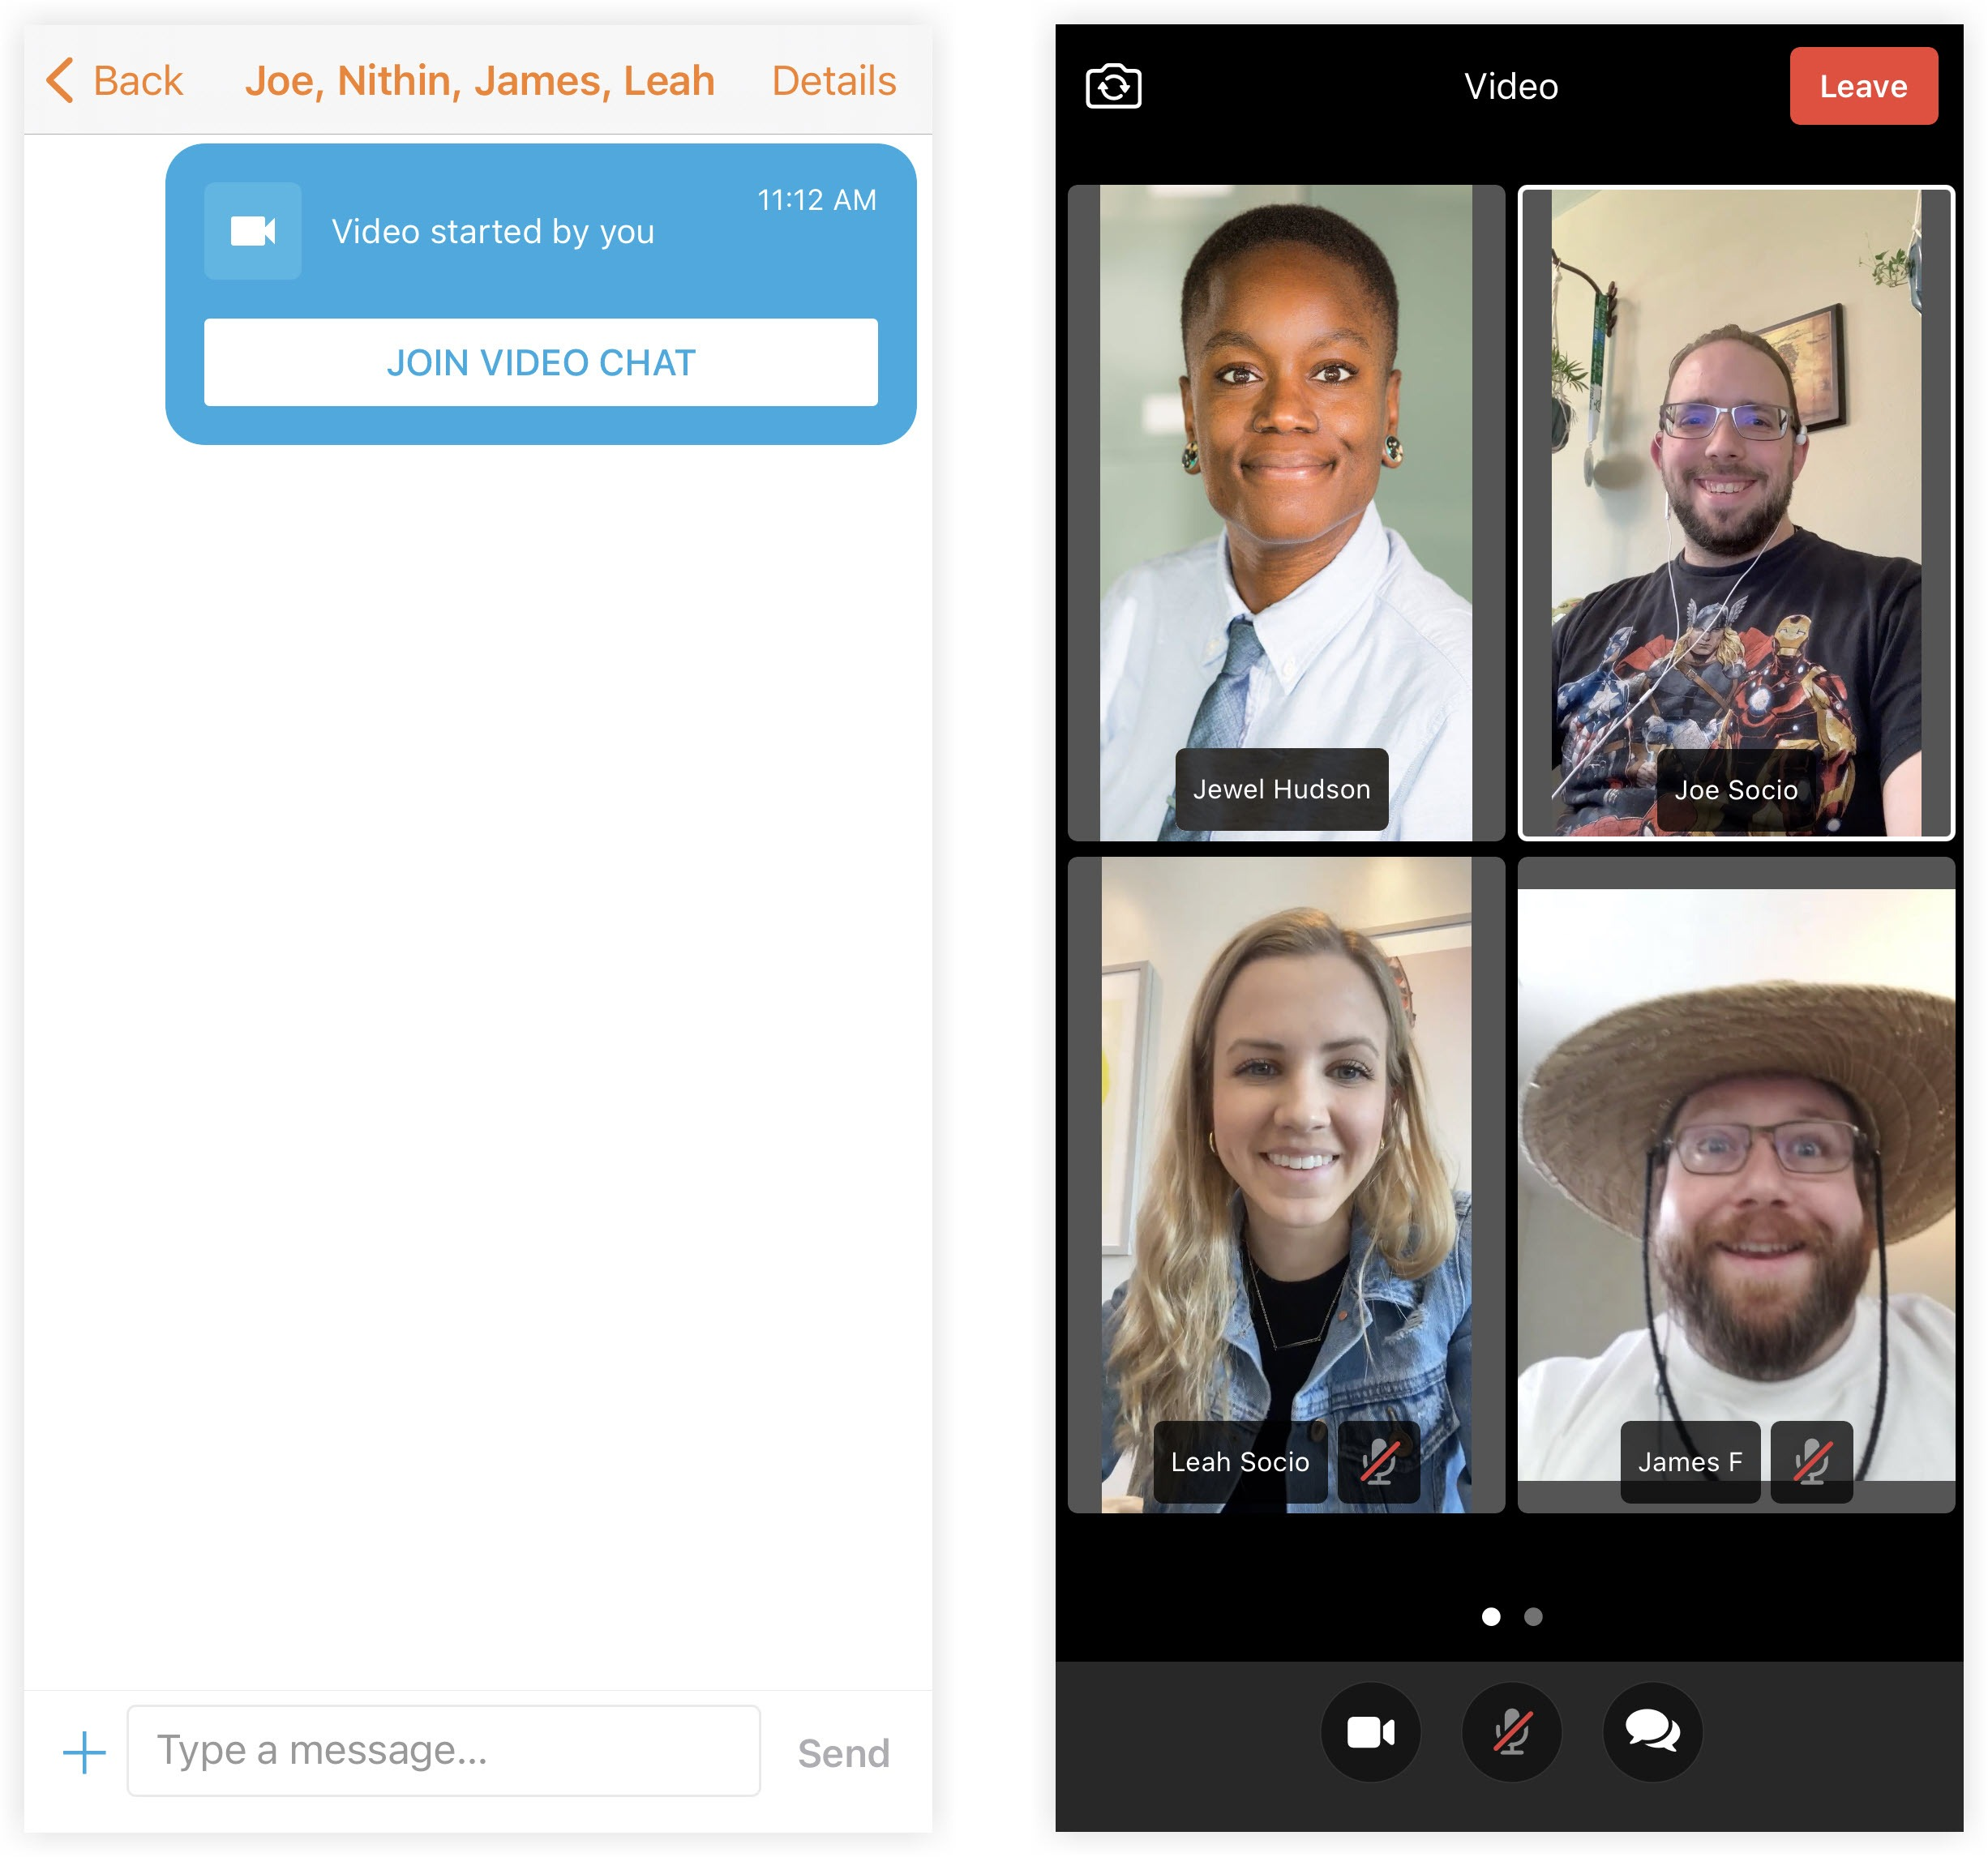 Two screenshots showing the Join Video Chat button in a private chat and four people in a private video session.